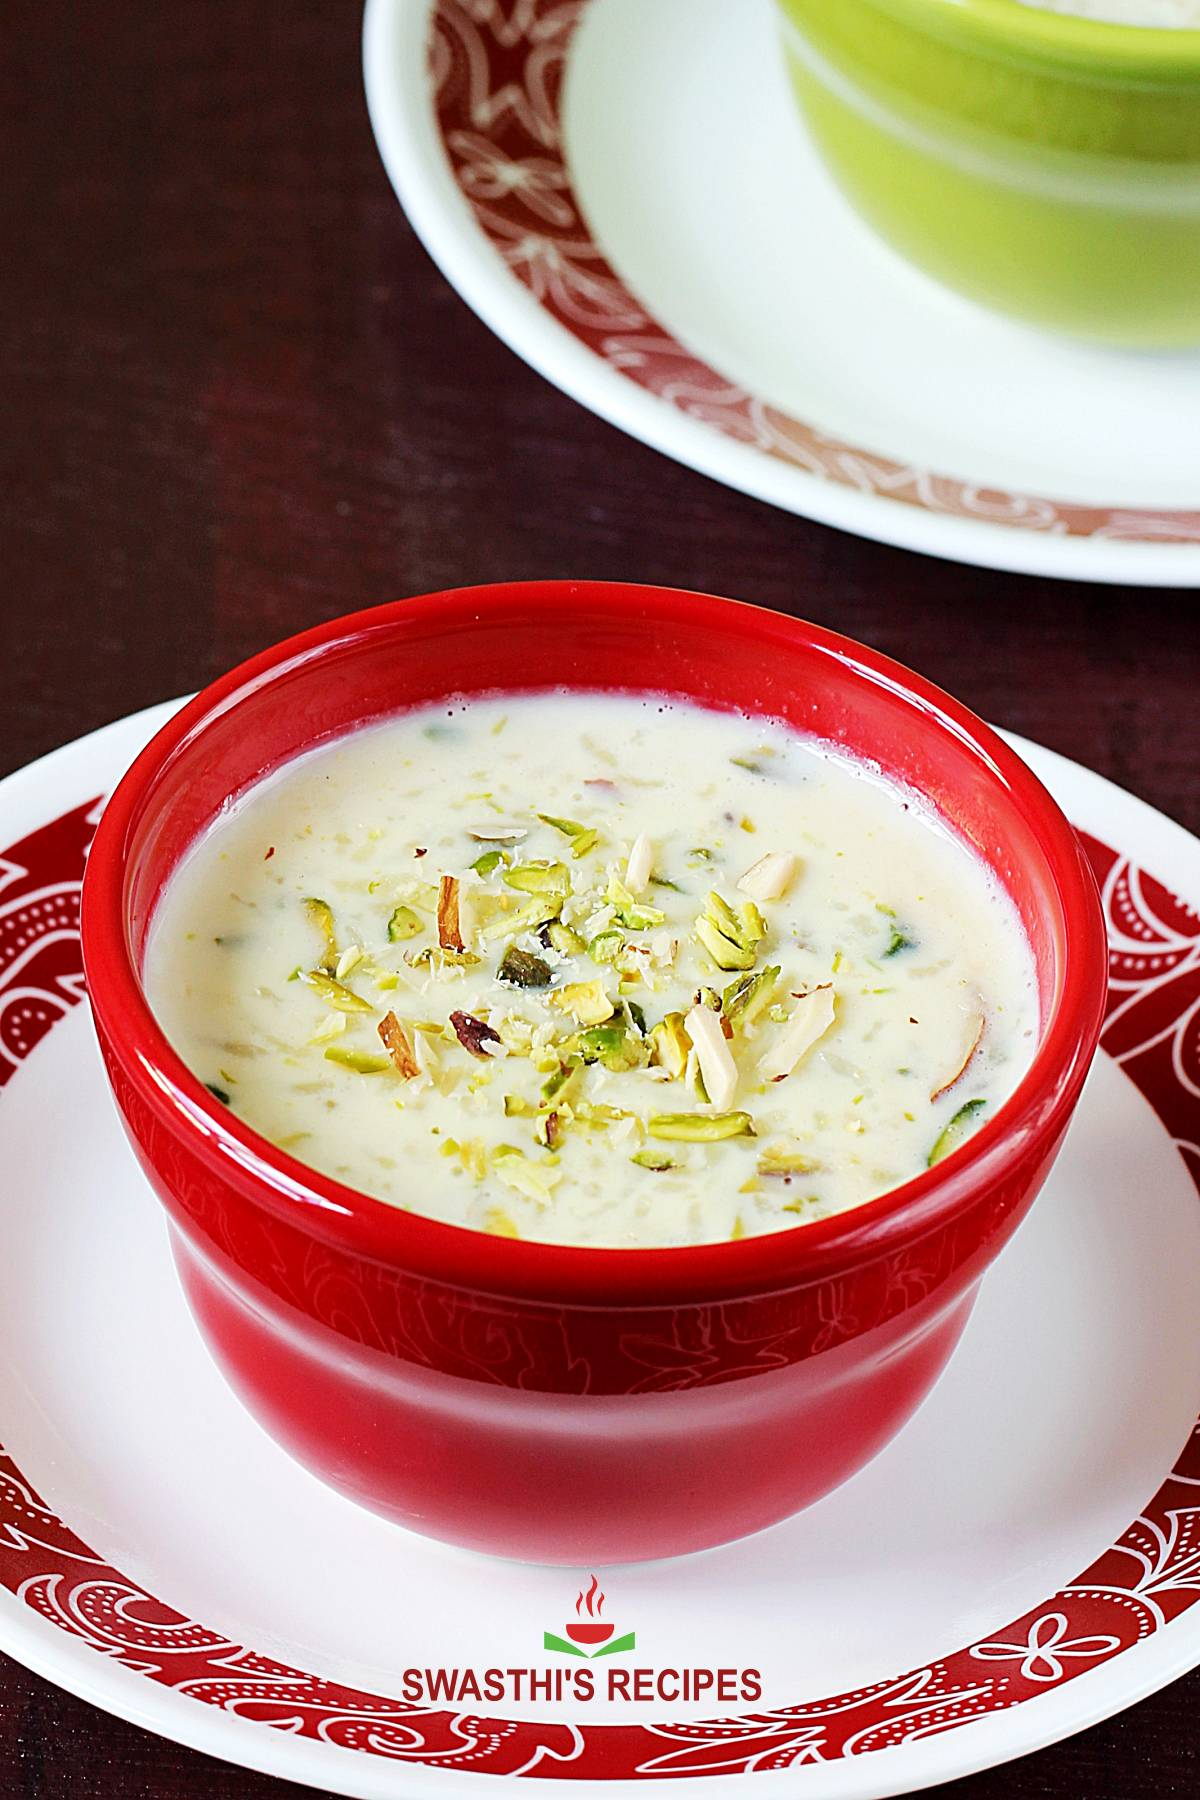 kheer recipe - rice kheer served in a bowl garnished with nuts